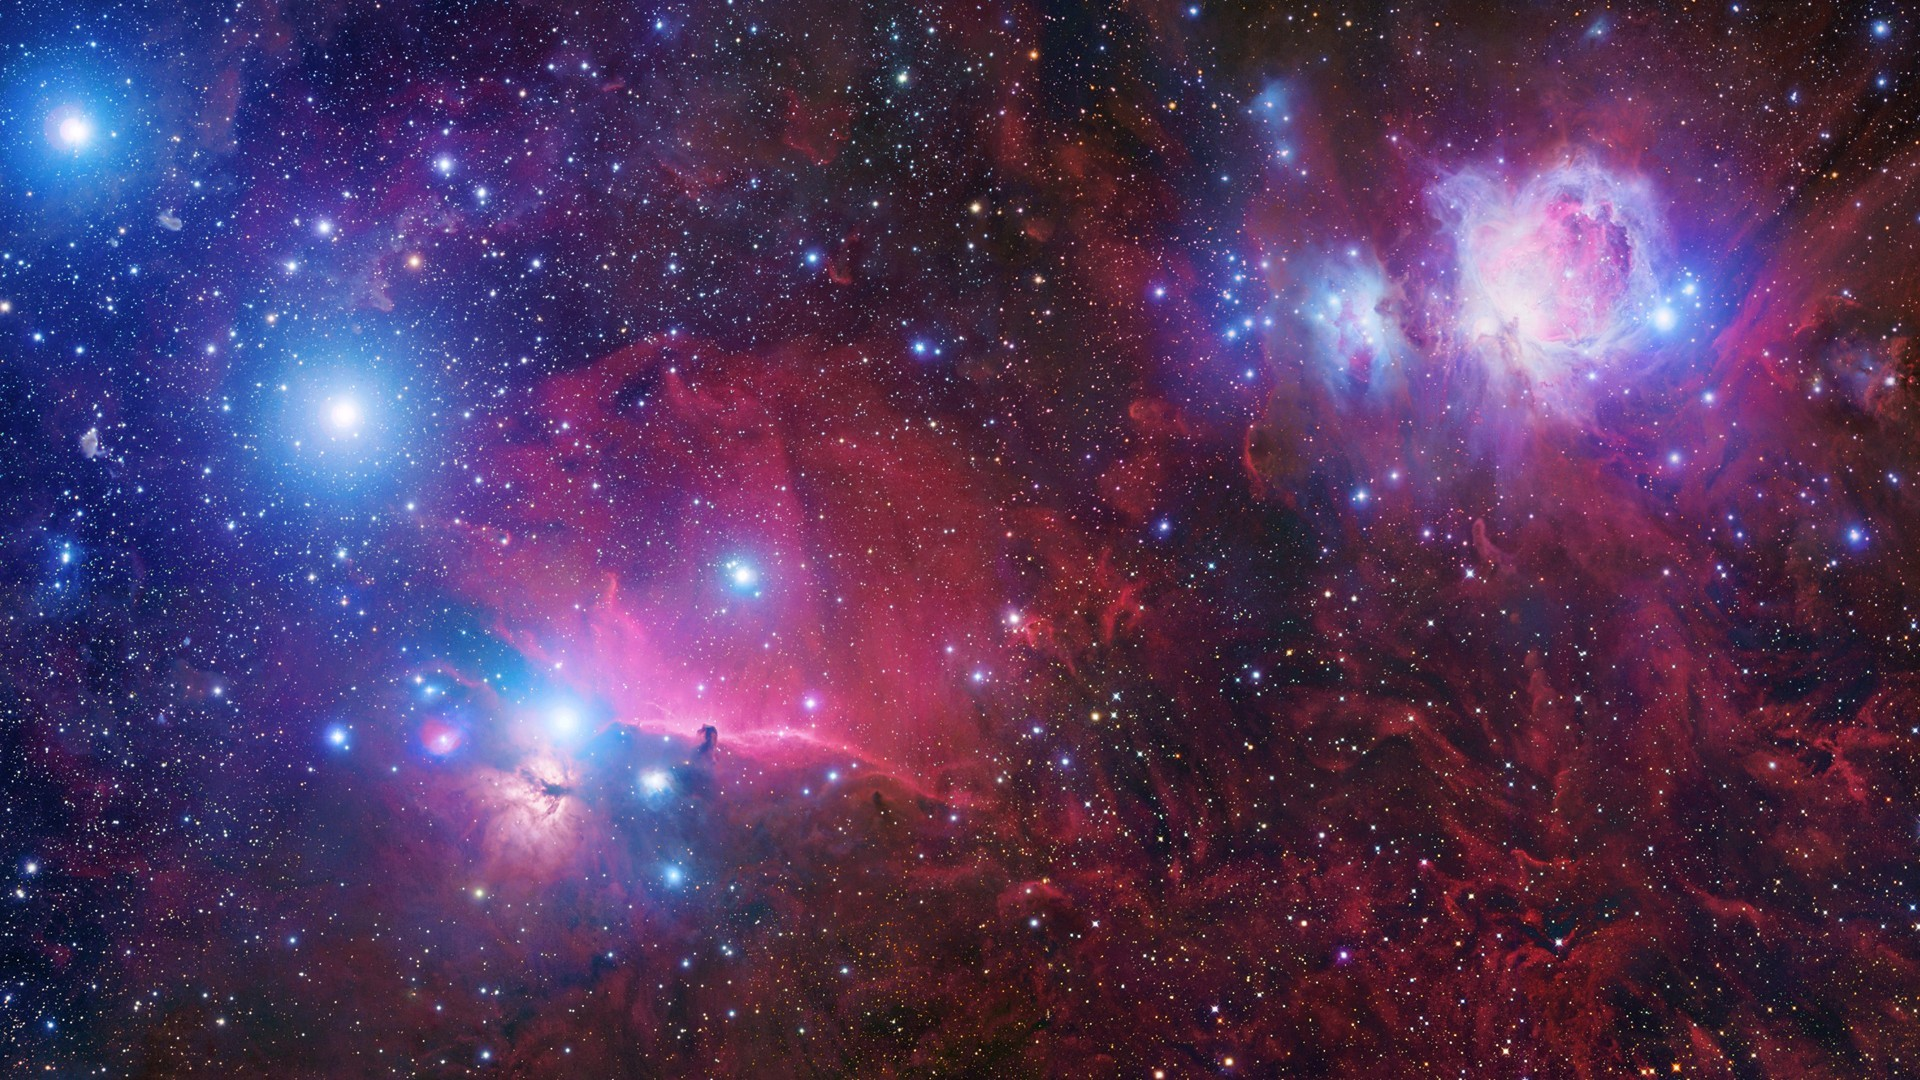 HD Space Wallpaper For Background 6